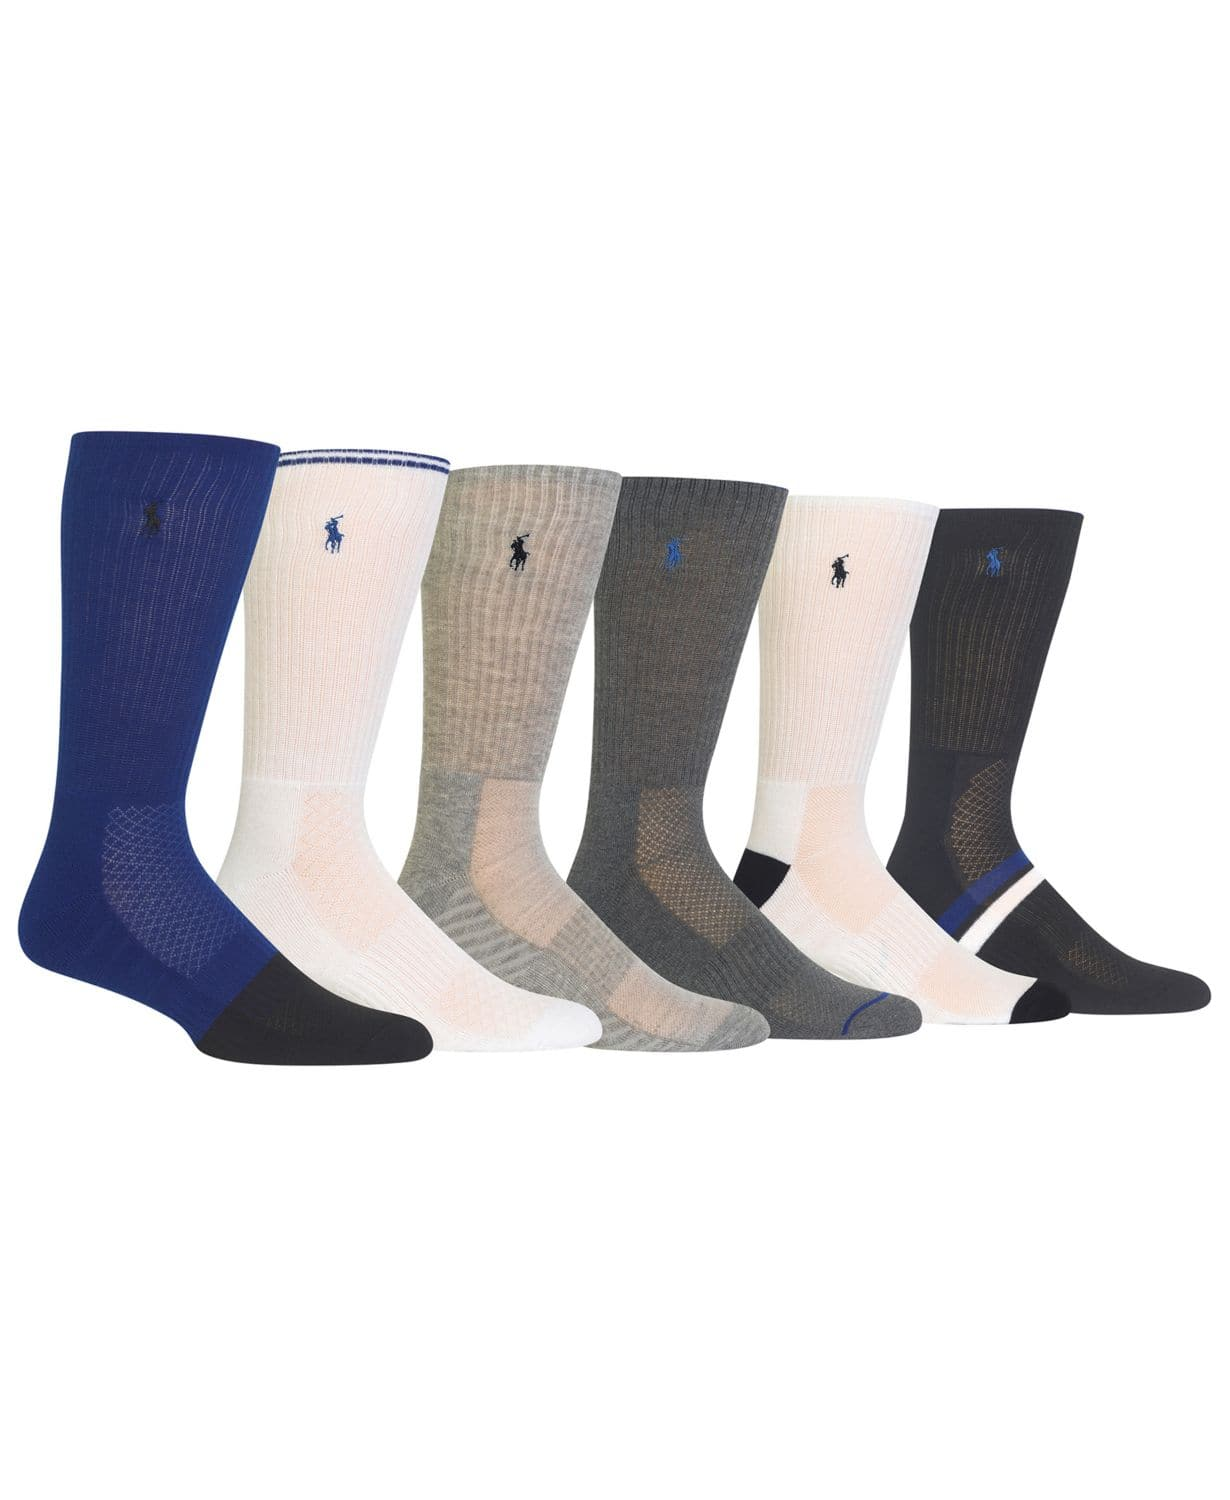 Polo Ralph Lauren Men's Big & Tall 6-Pk. Athletic Textured Crew Socks  **NO LONGER AVAILABLE**